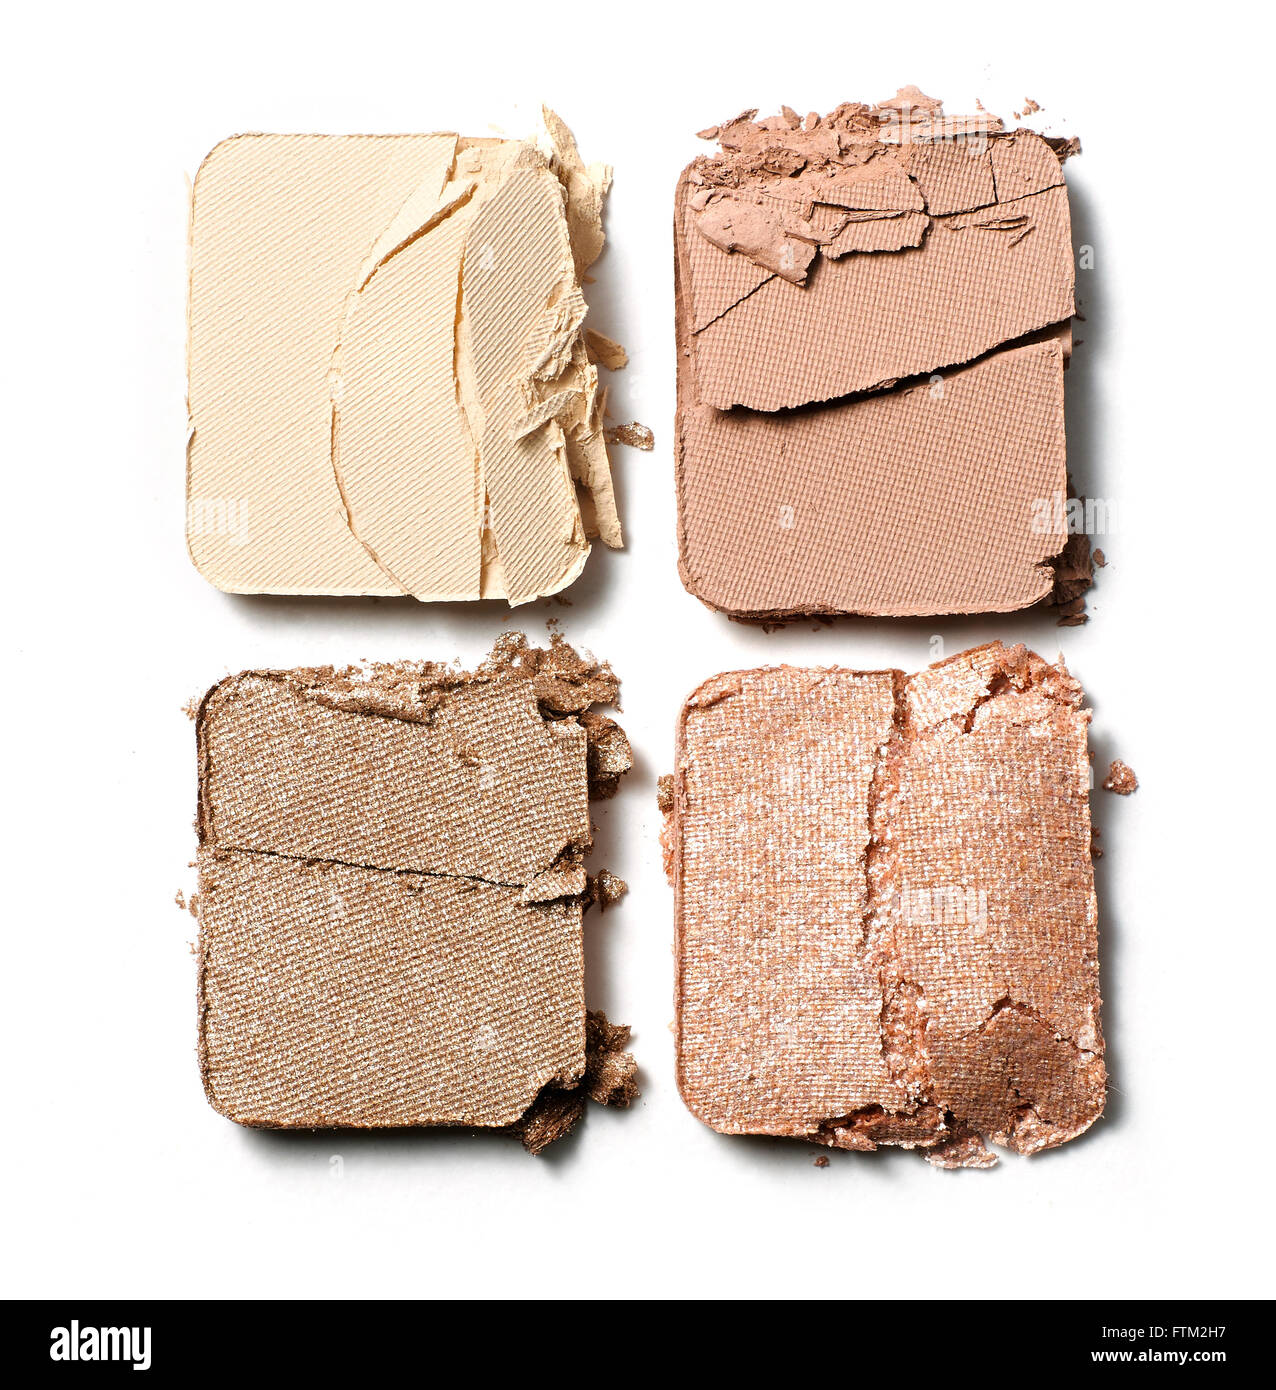 Cracked eye shadow palette - Stock Image